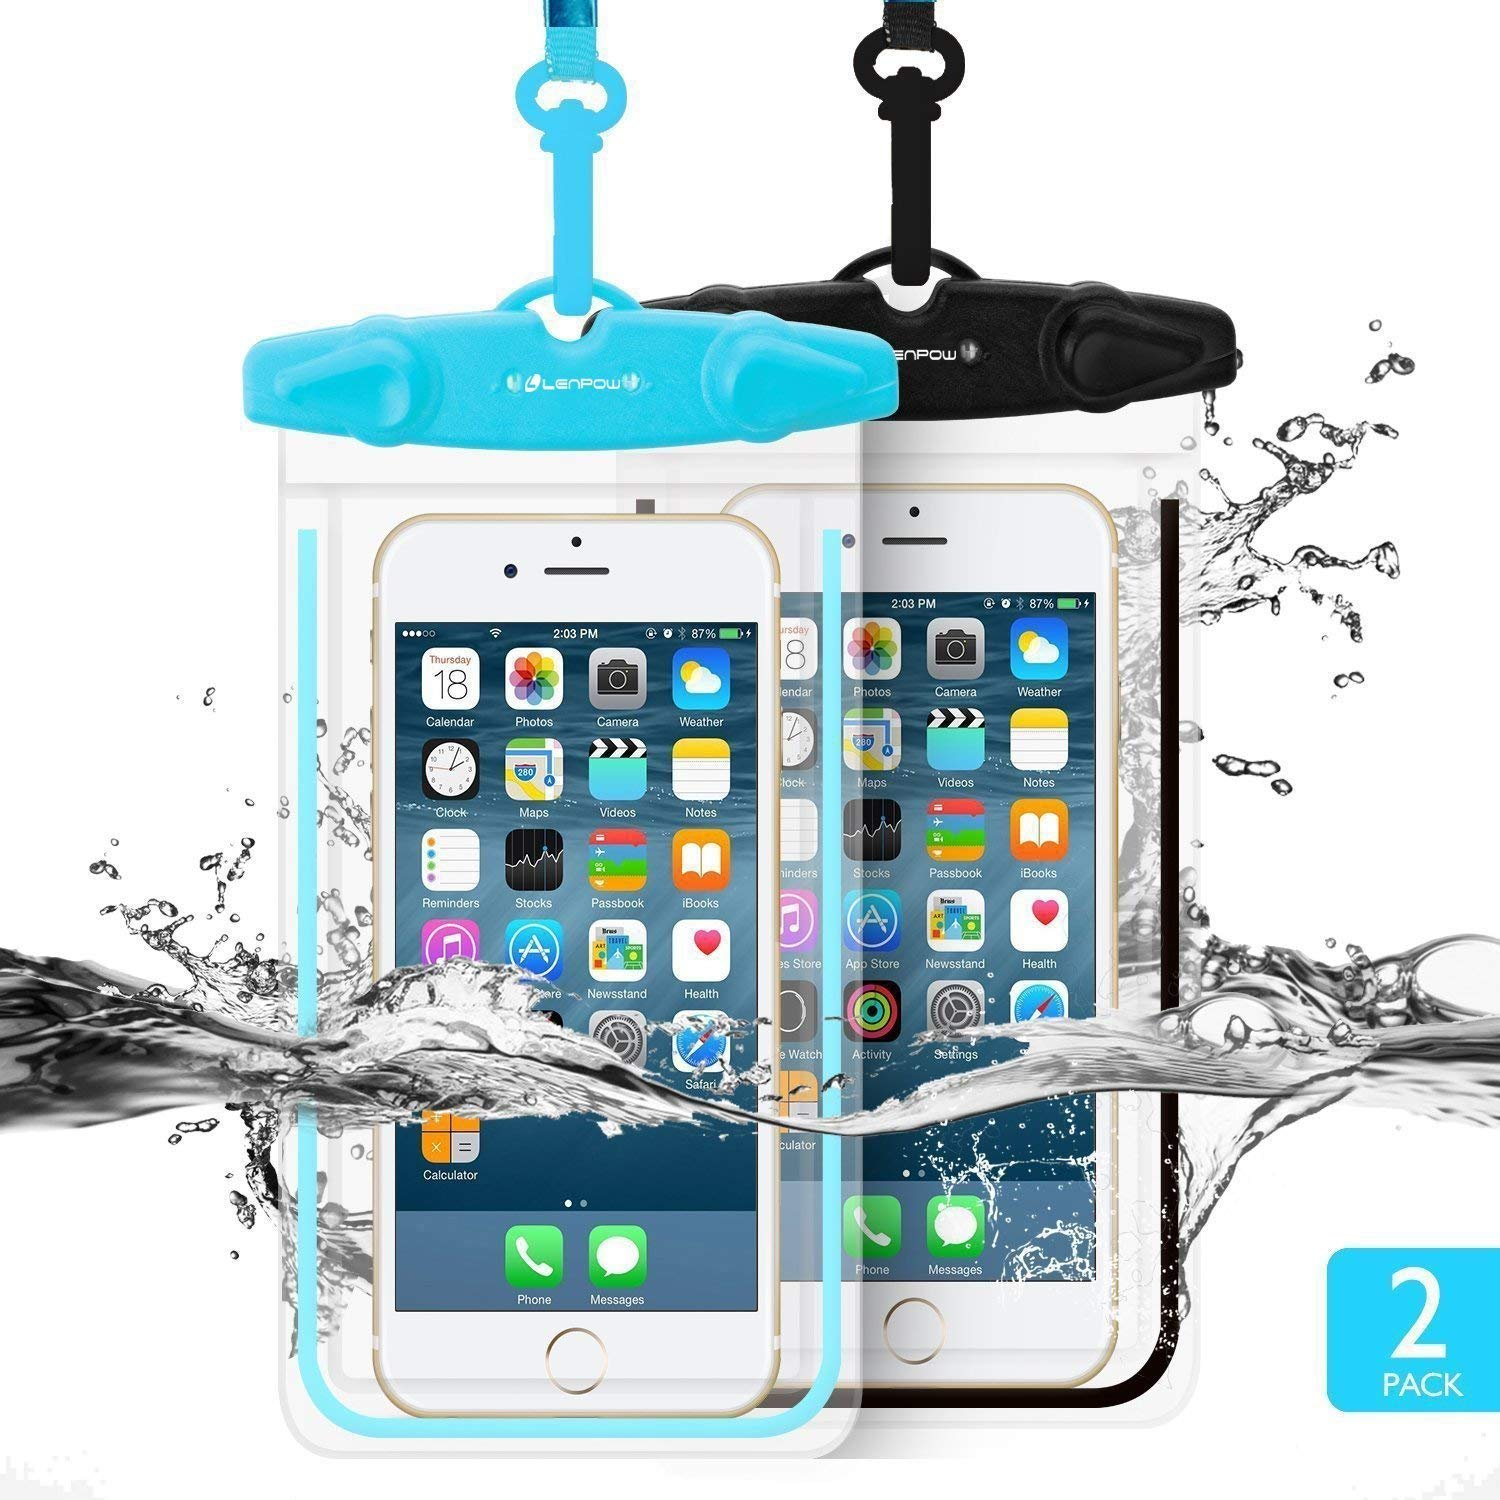 LENPOW Waterproof Phone Case, 2 Pack Universal Waterproof Pouch Dry Bag With Neck Strap Luminous Ornament for Water Games Protect iPhone X 8 7 6 6s Plus 5s Galaxy S9 S8 Edge Note Google Pixel LG HTC